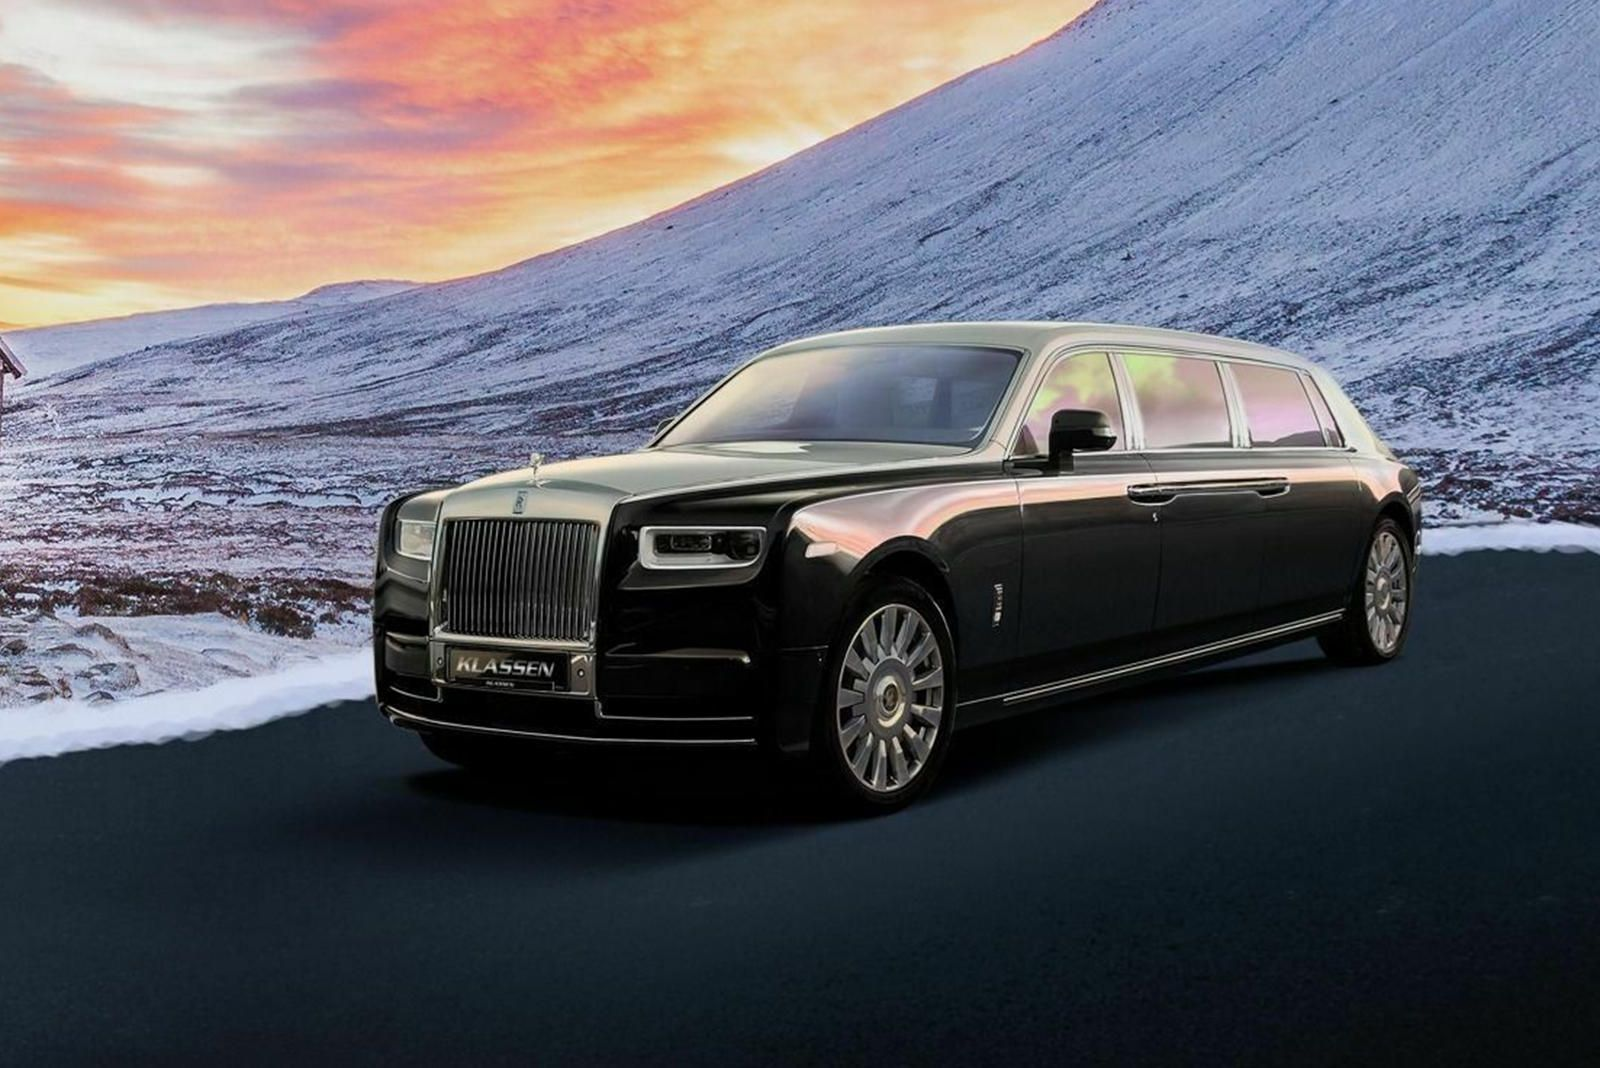 This Stretched Bulletproof 3m Rolls Royce Is The Last Word In Vip Protection This Rolls Royce Phantom Rolls Royce Rolls Royce Phantom Rolls Royce Limousine